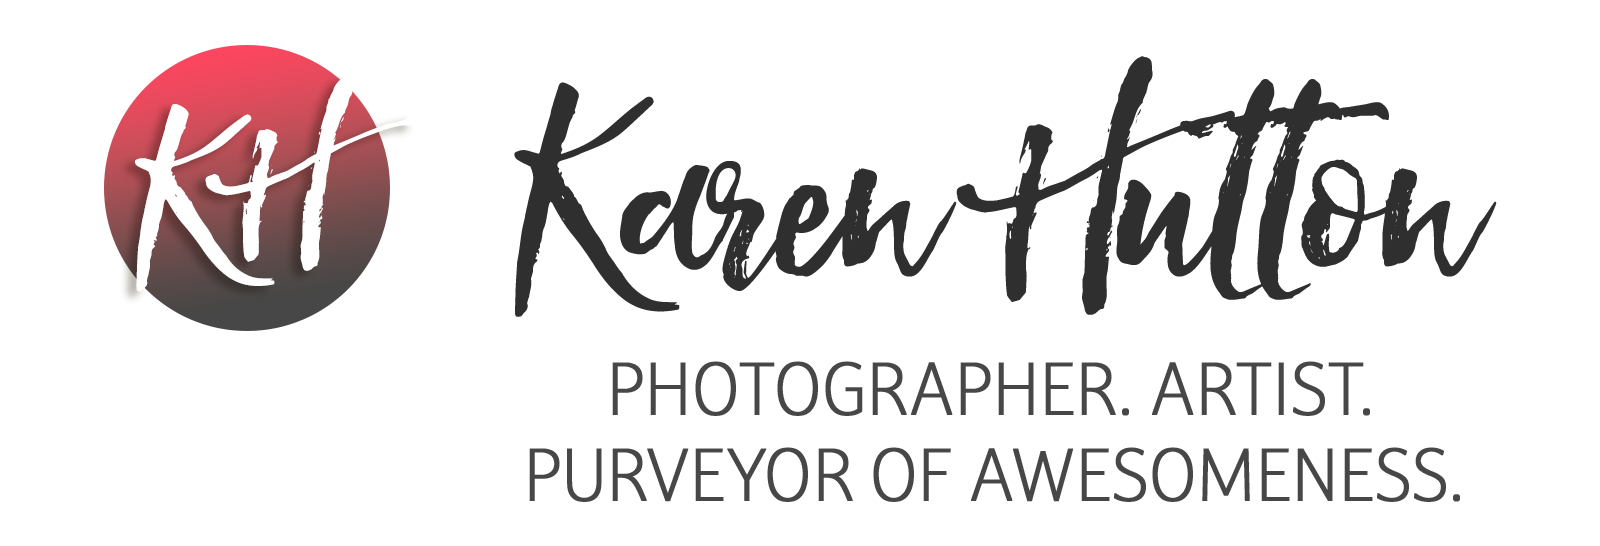 Karen Hutton Photographer. Voice. Purveyor of Awesomeness.